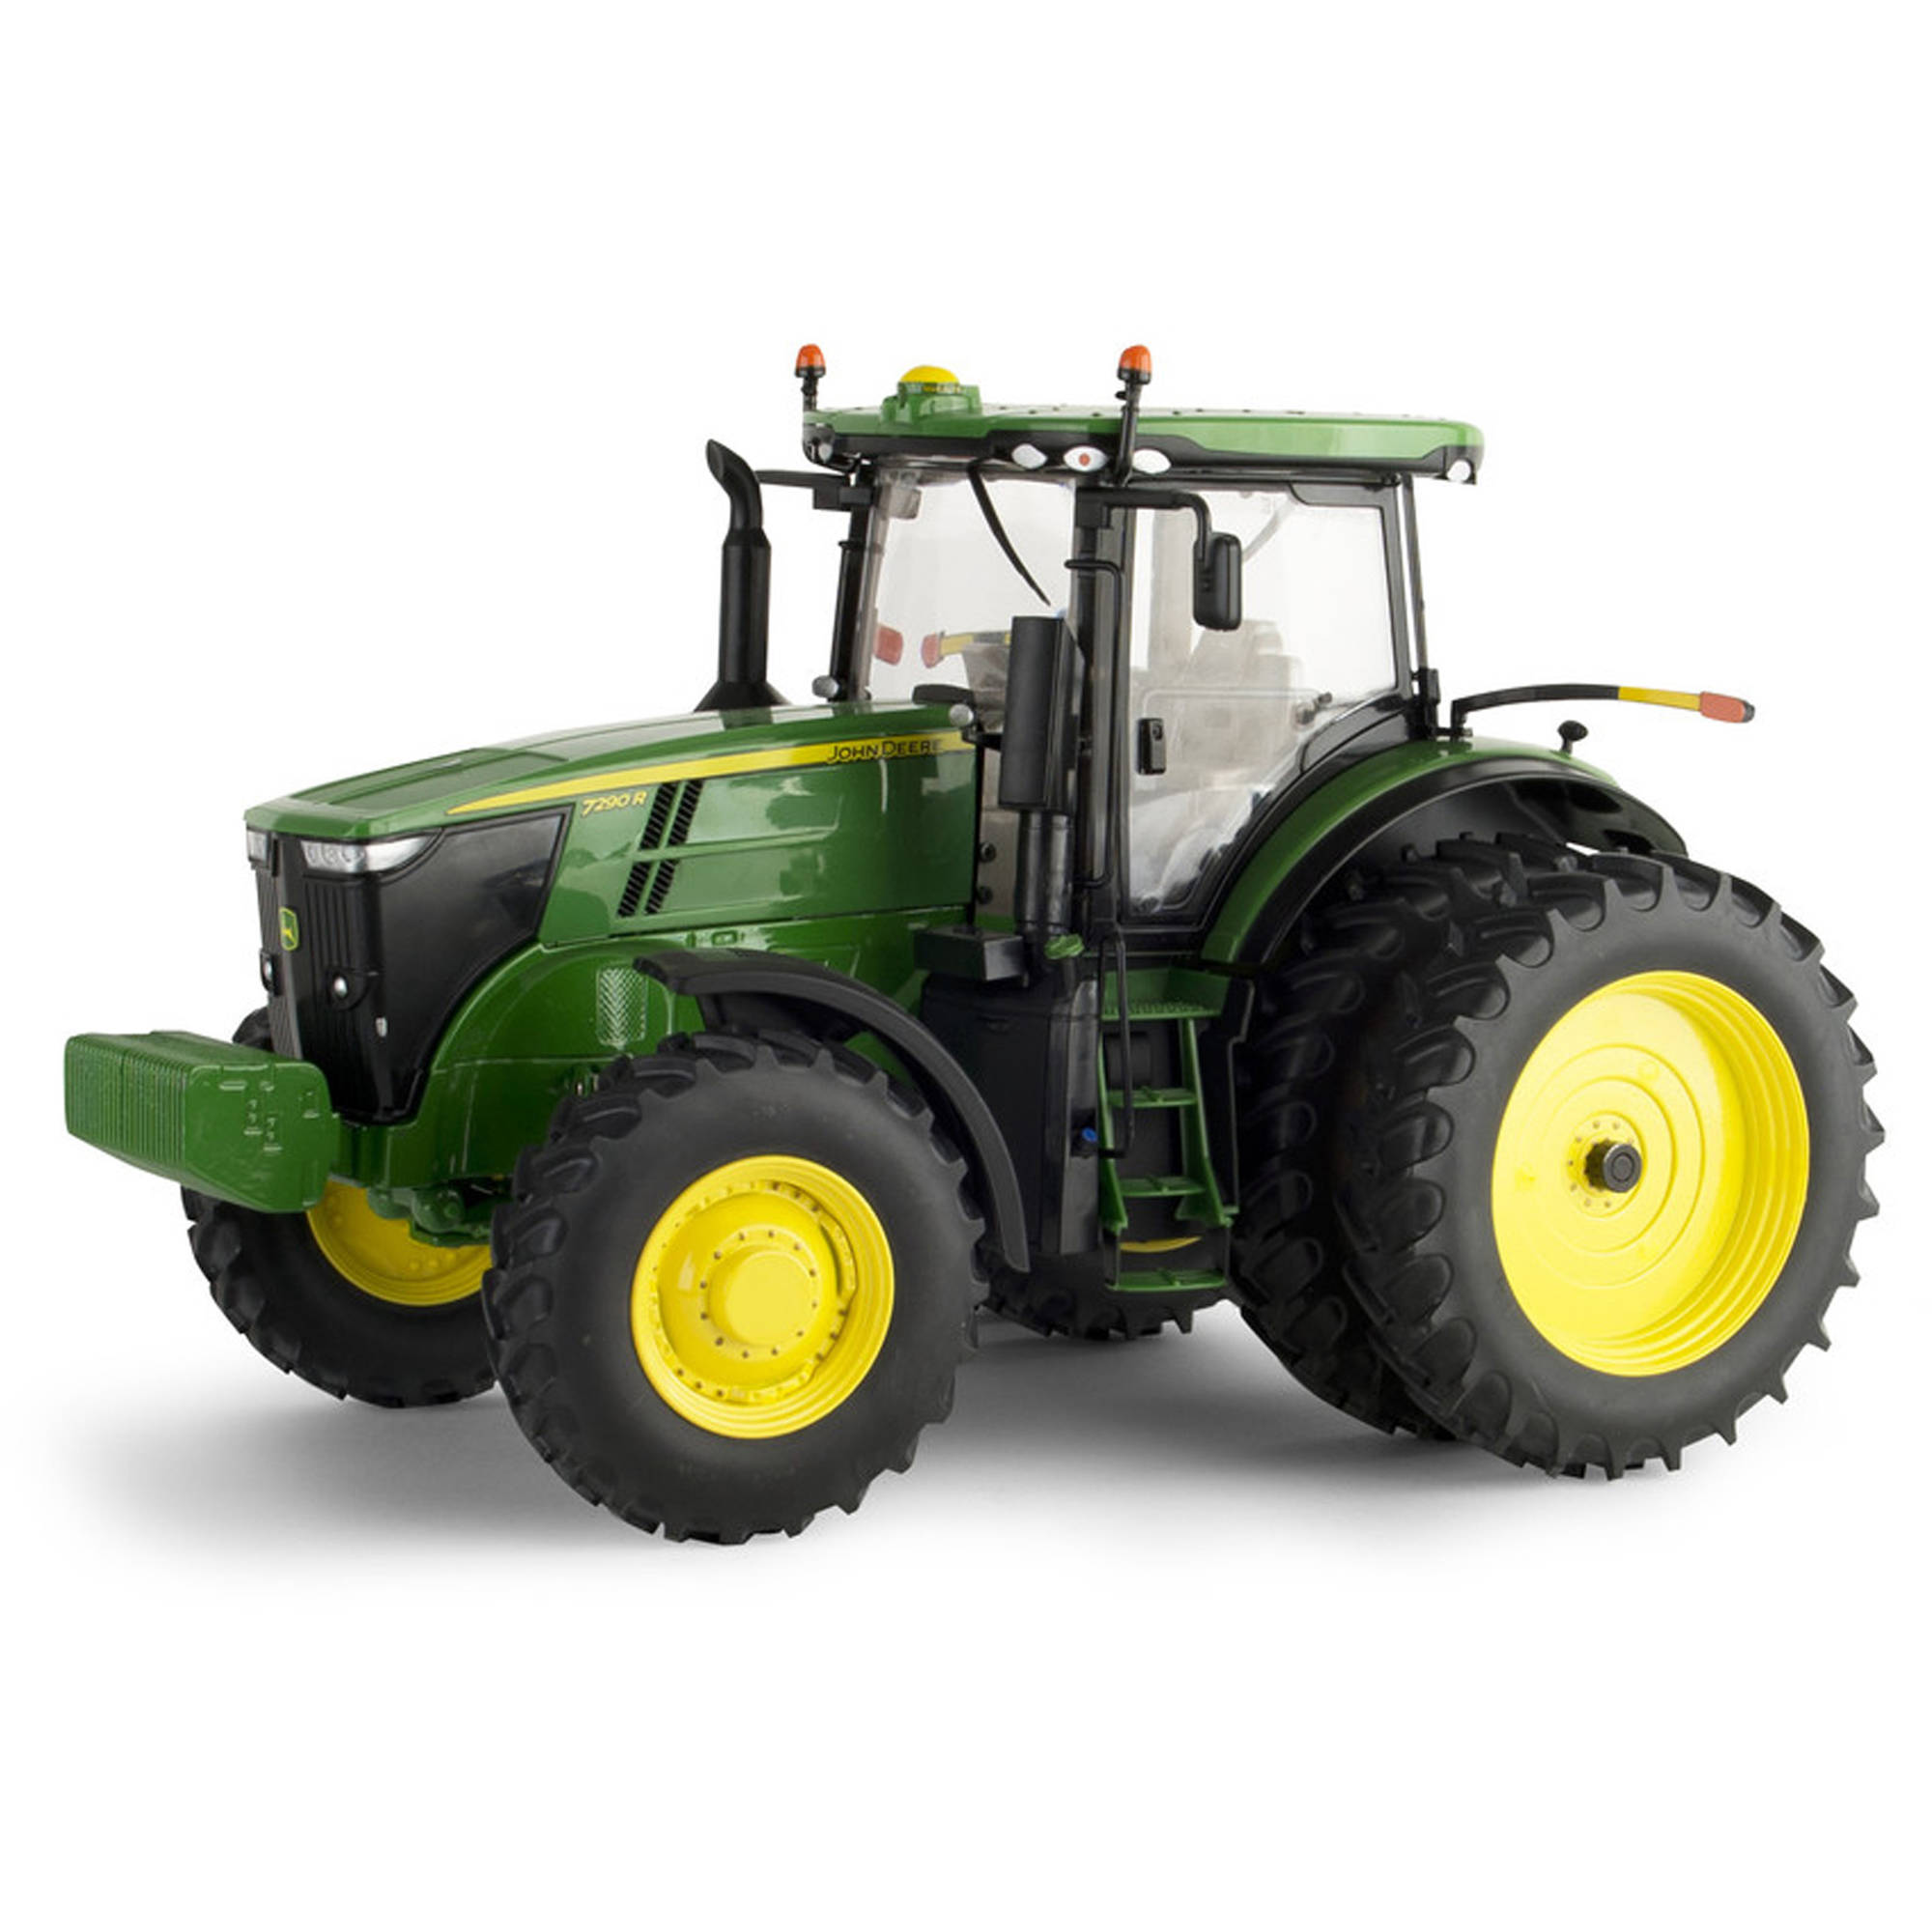 ERTL 1/16 John Deere 7290R Tractor from the Prestige Collection